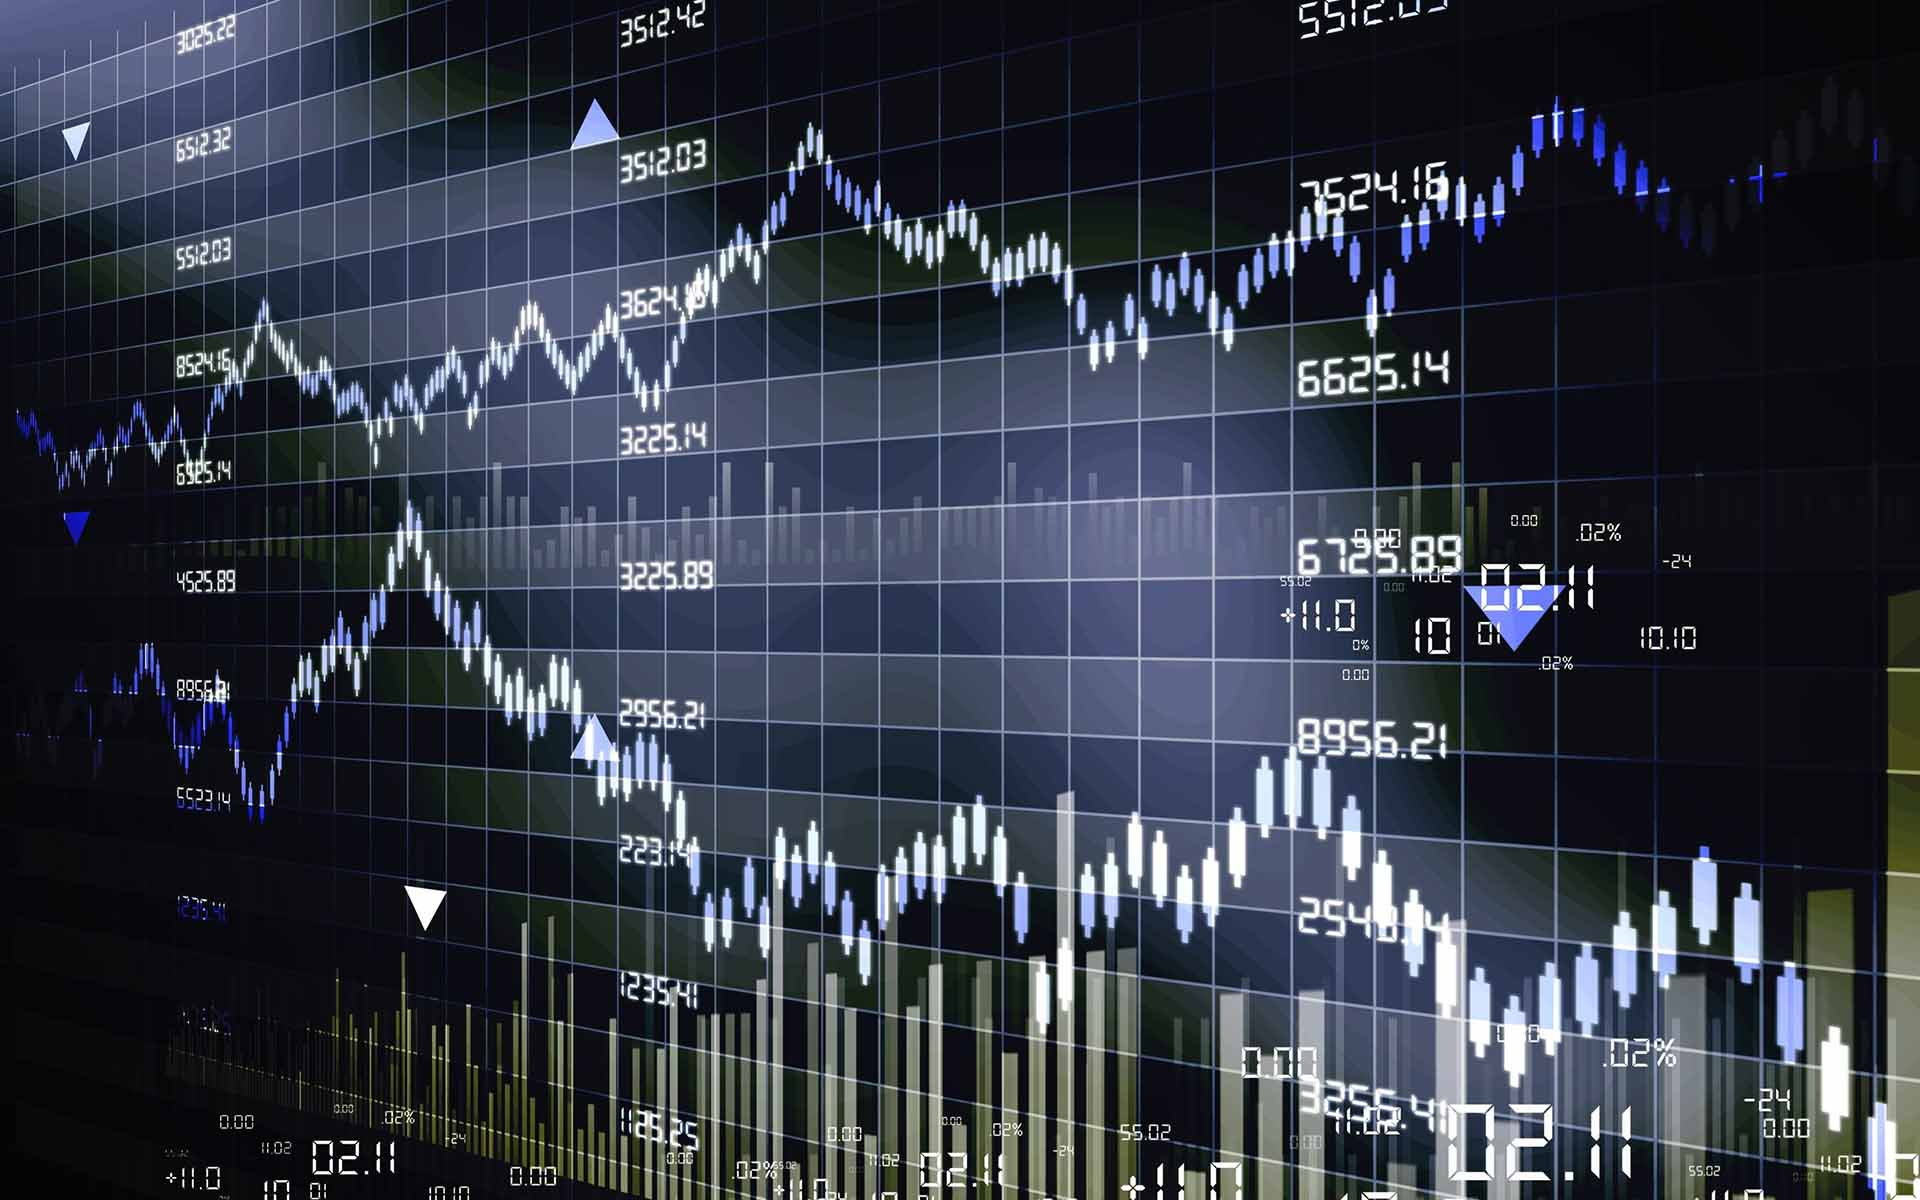 Crypto Hedge Funds on the Precipice - What Does the Future Hold?